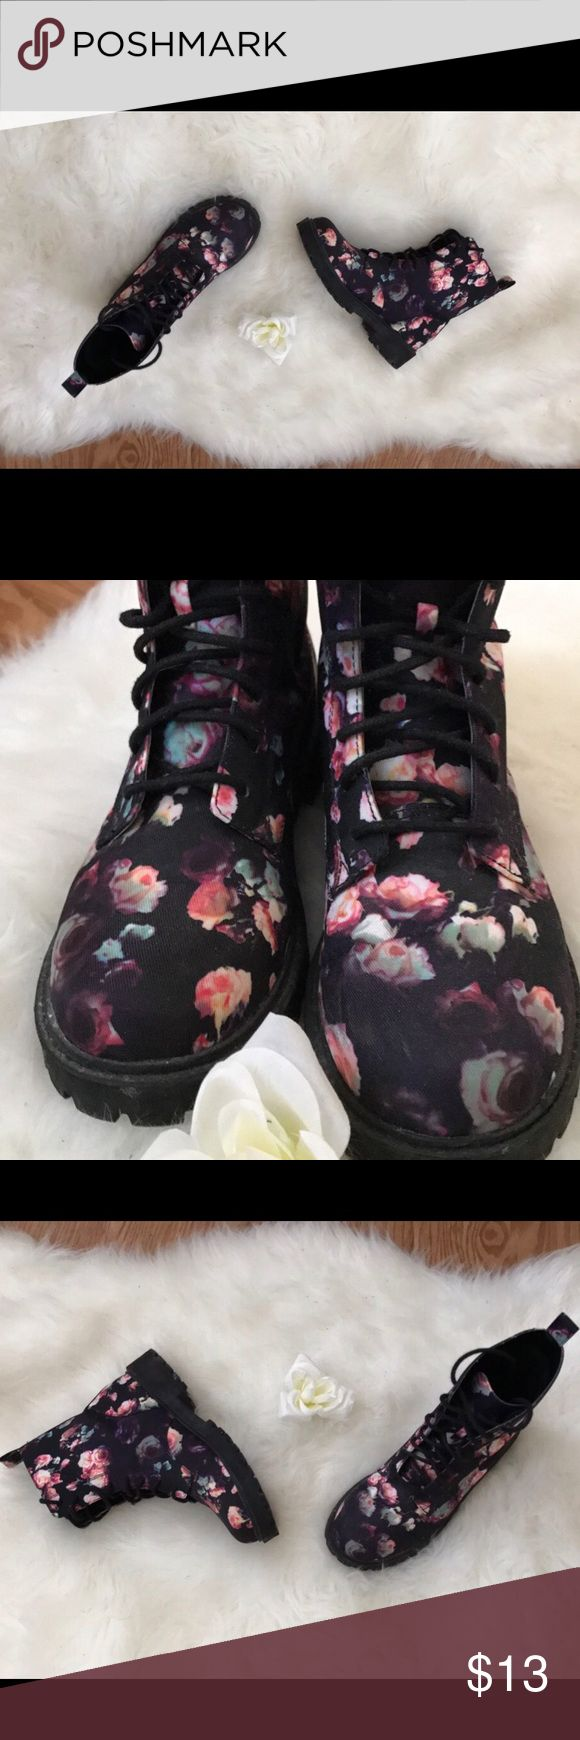 H&M floral combat boots Combat boot style with pastel pinks, blues, purple, etc flowers. Boots in great condition size US 7 woman. Please feel free to ask any questions. Shoes Combat & Moto Boots